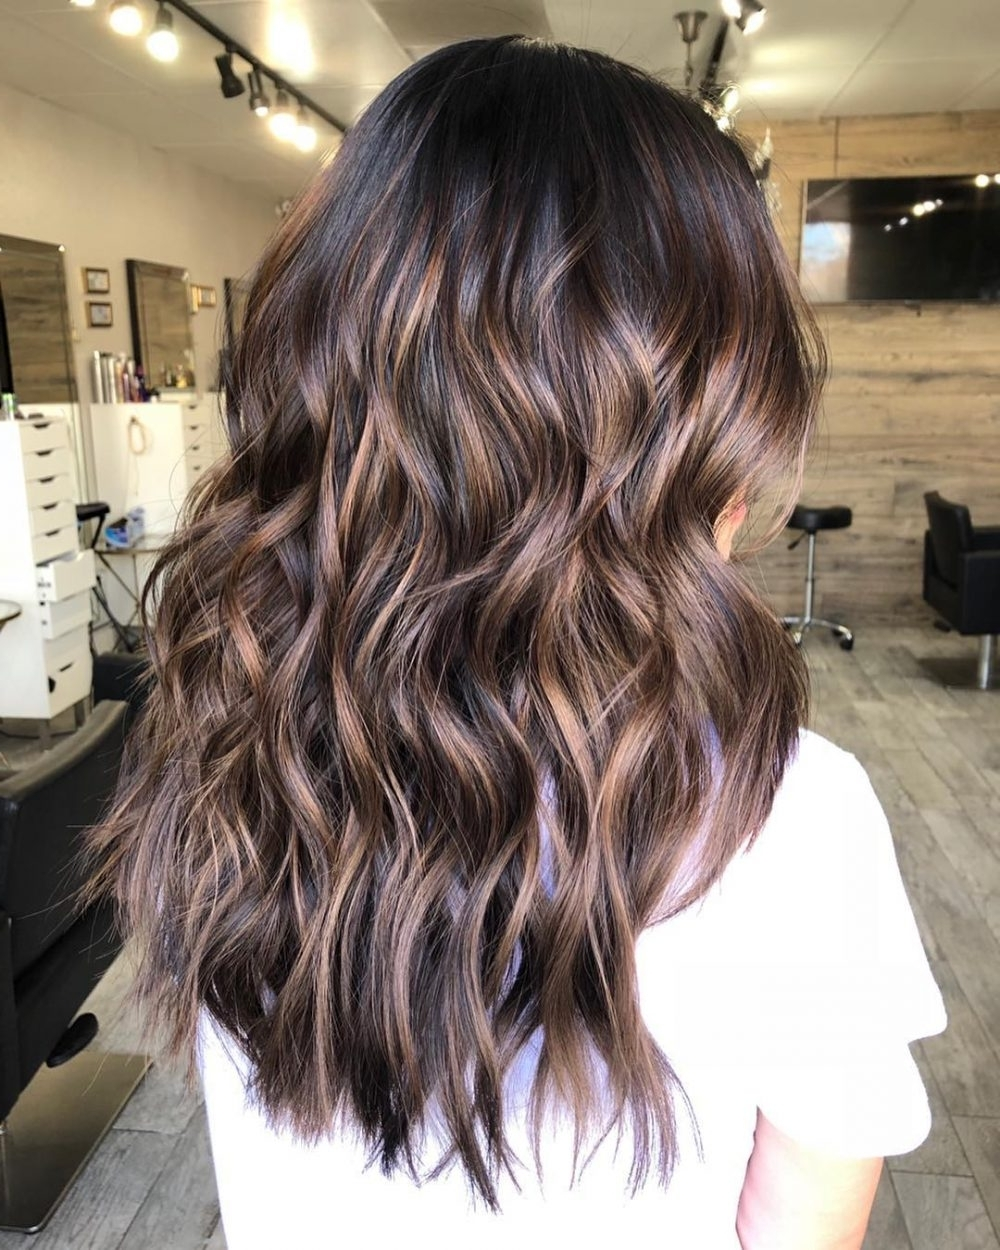 26 Lowlights In 2018 That Will Inspire Your Next Hair Color In Most Recently Released Dark Brown Hair Hairstyles With Silver Blonde Highlights (View 1 of 20)